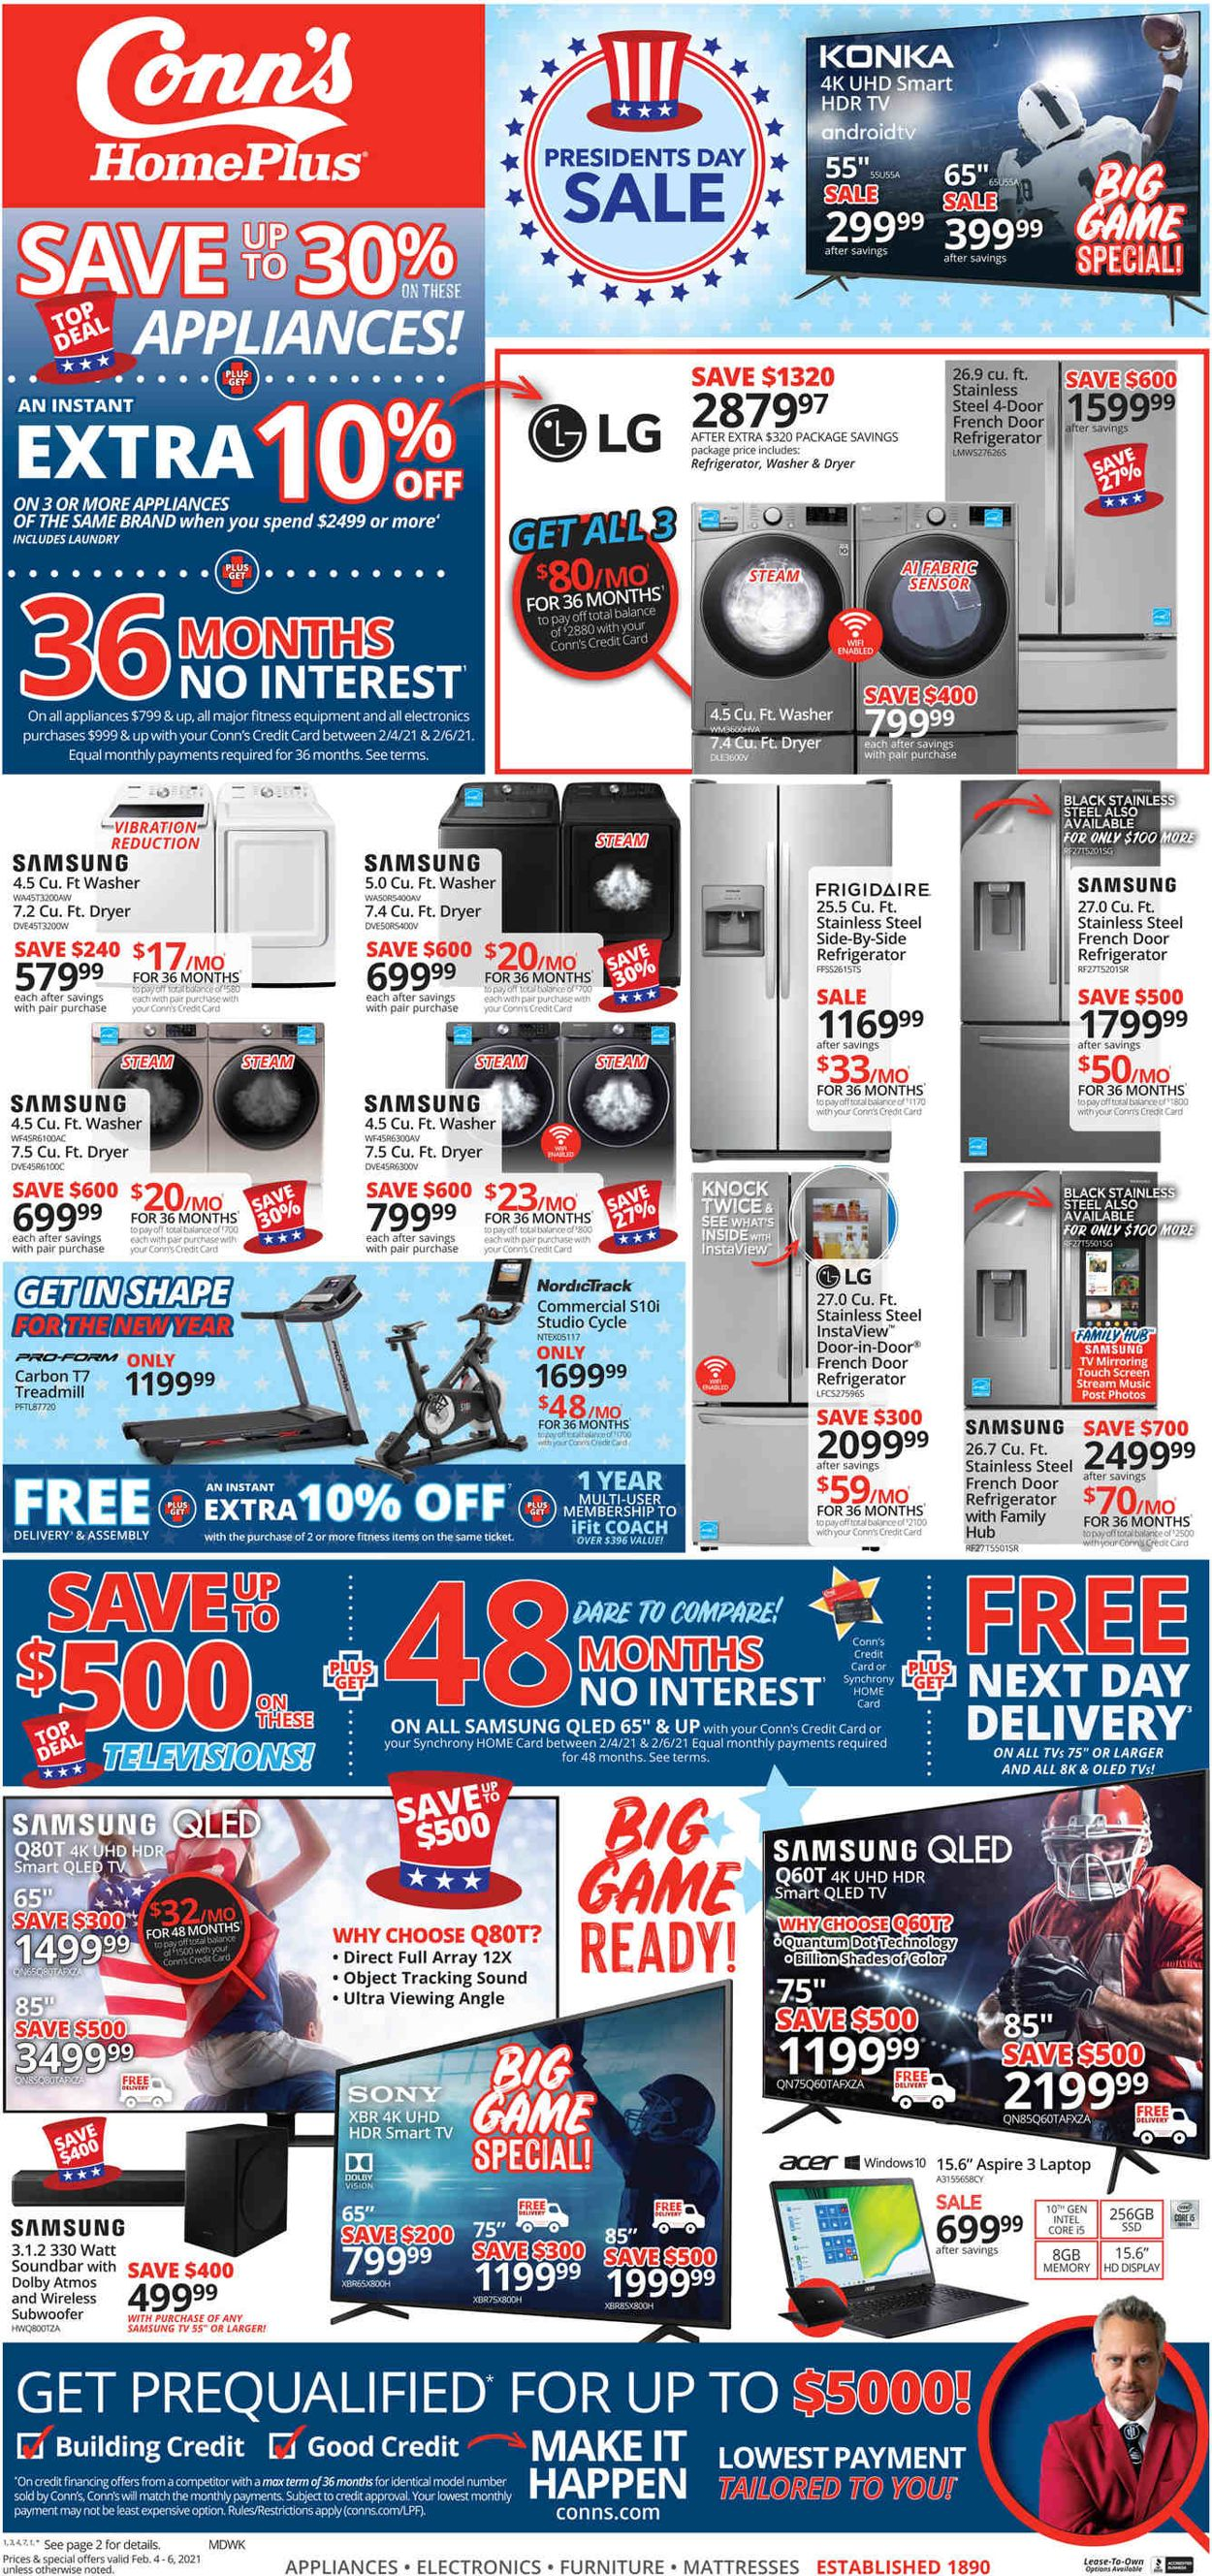 Conn's Home Plus Weekly Ad Circular - valid 02/04-02/06/2021